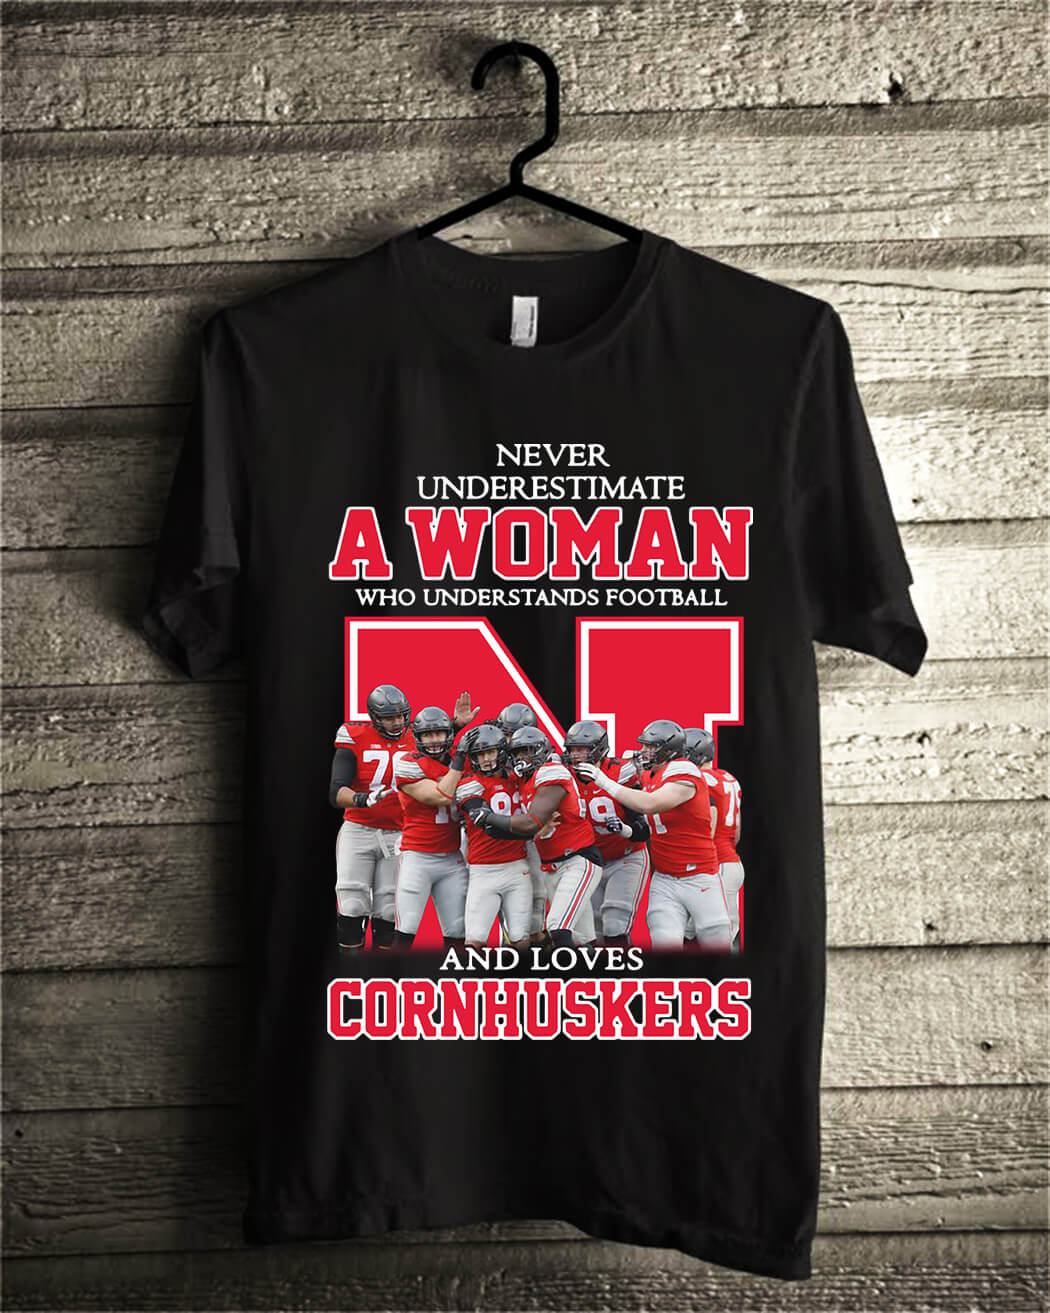 Never underestimate awoman who understands football and loves Cornhuskers shirt